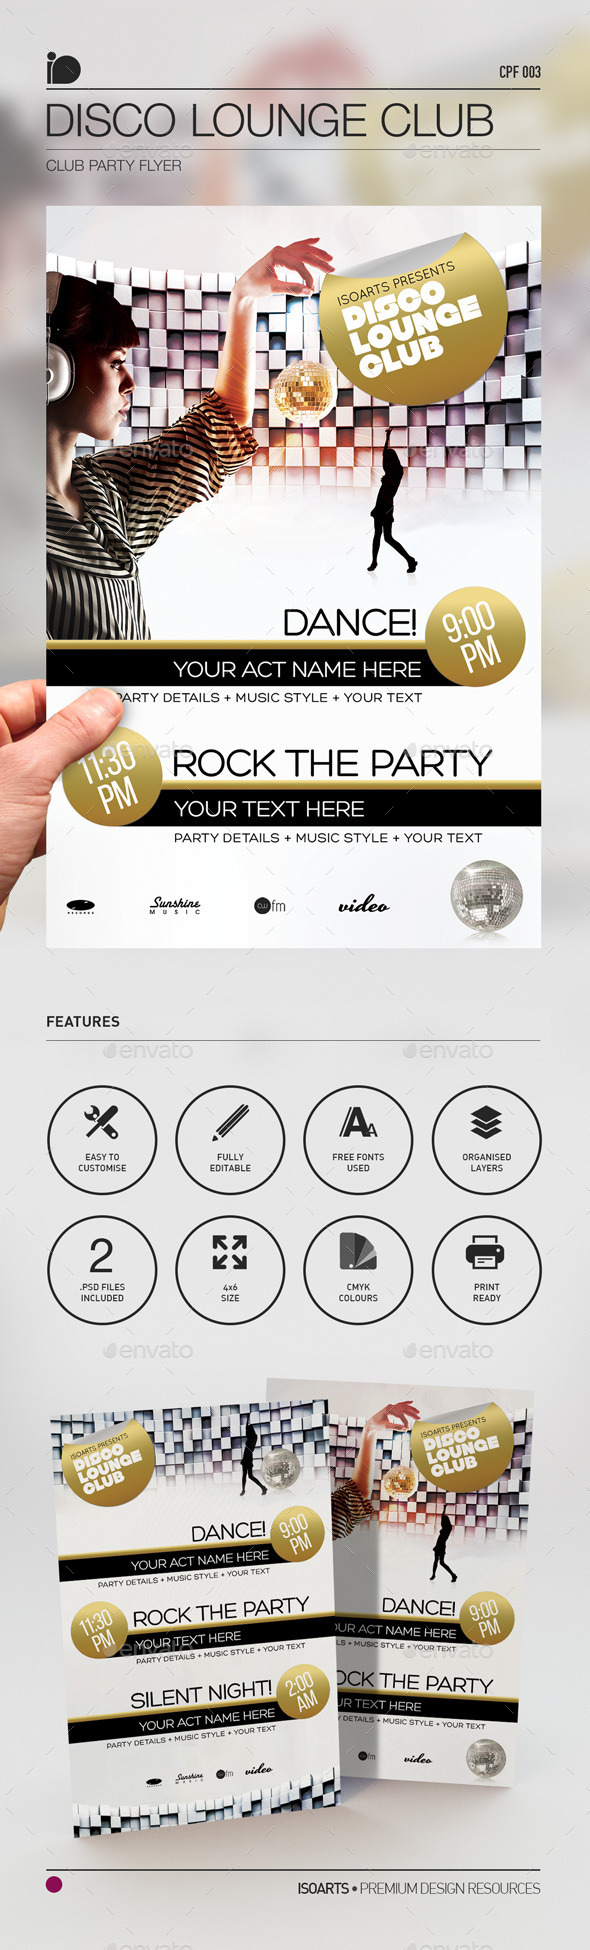 Club Party Flyer • Disco Lounge Club - Clubs & Parties Events